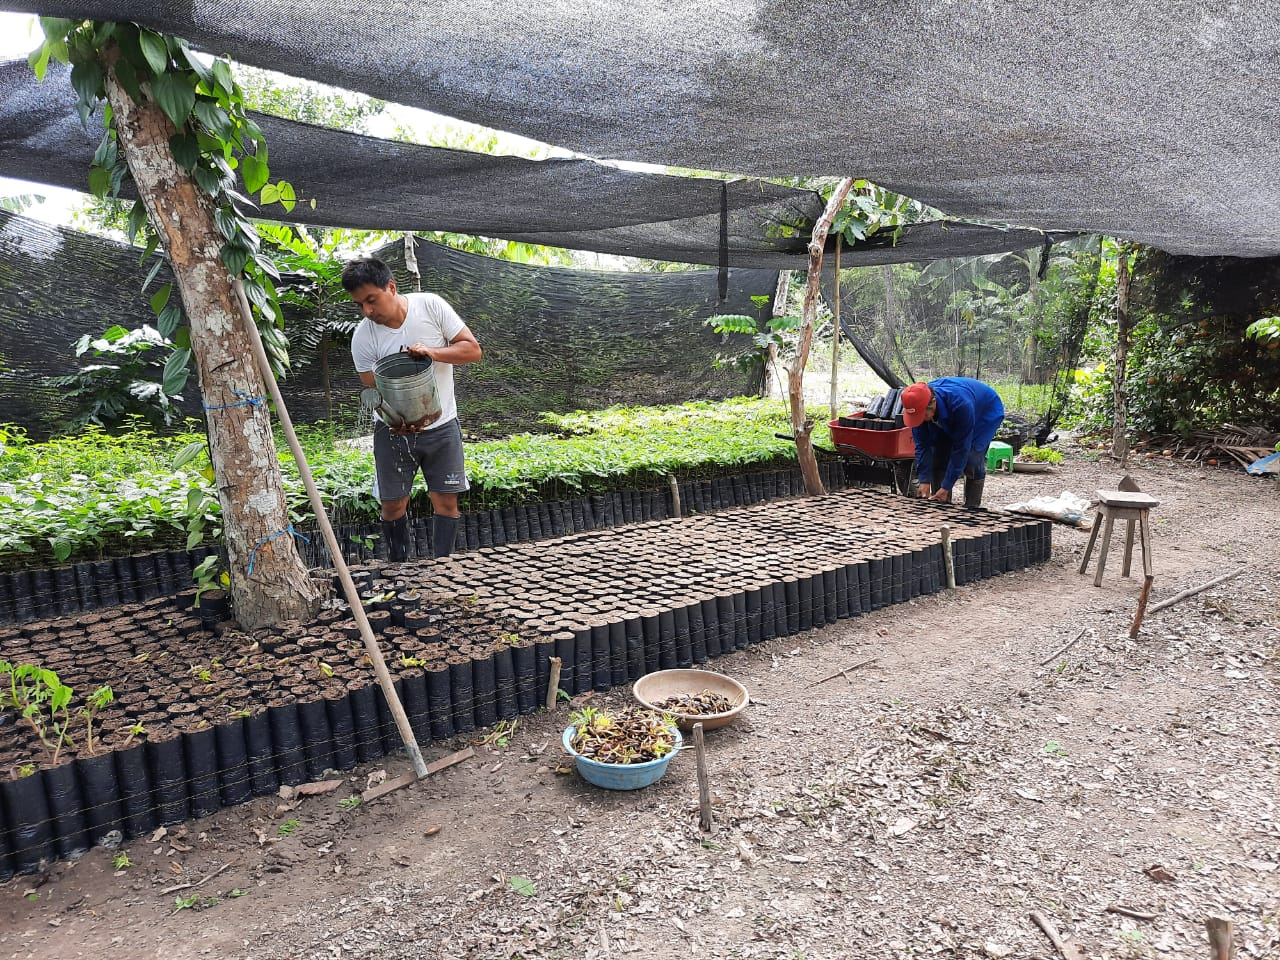 plant-a-tree-planting-charity-native-amazon-rainforest-reforestation-agroforestry-peru-plant-your-future-15